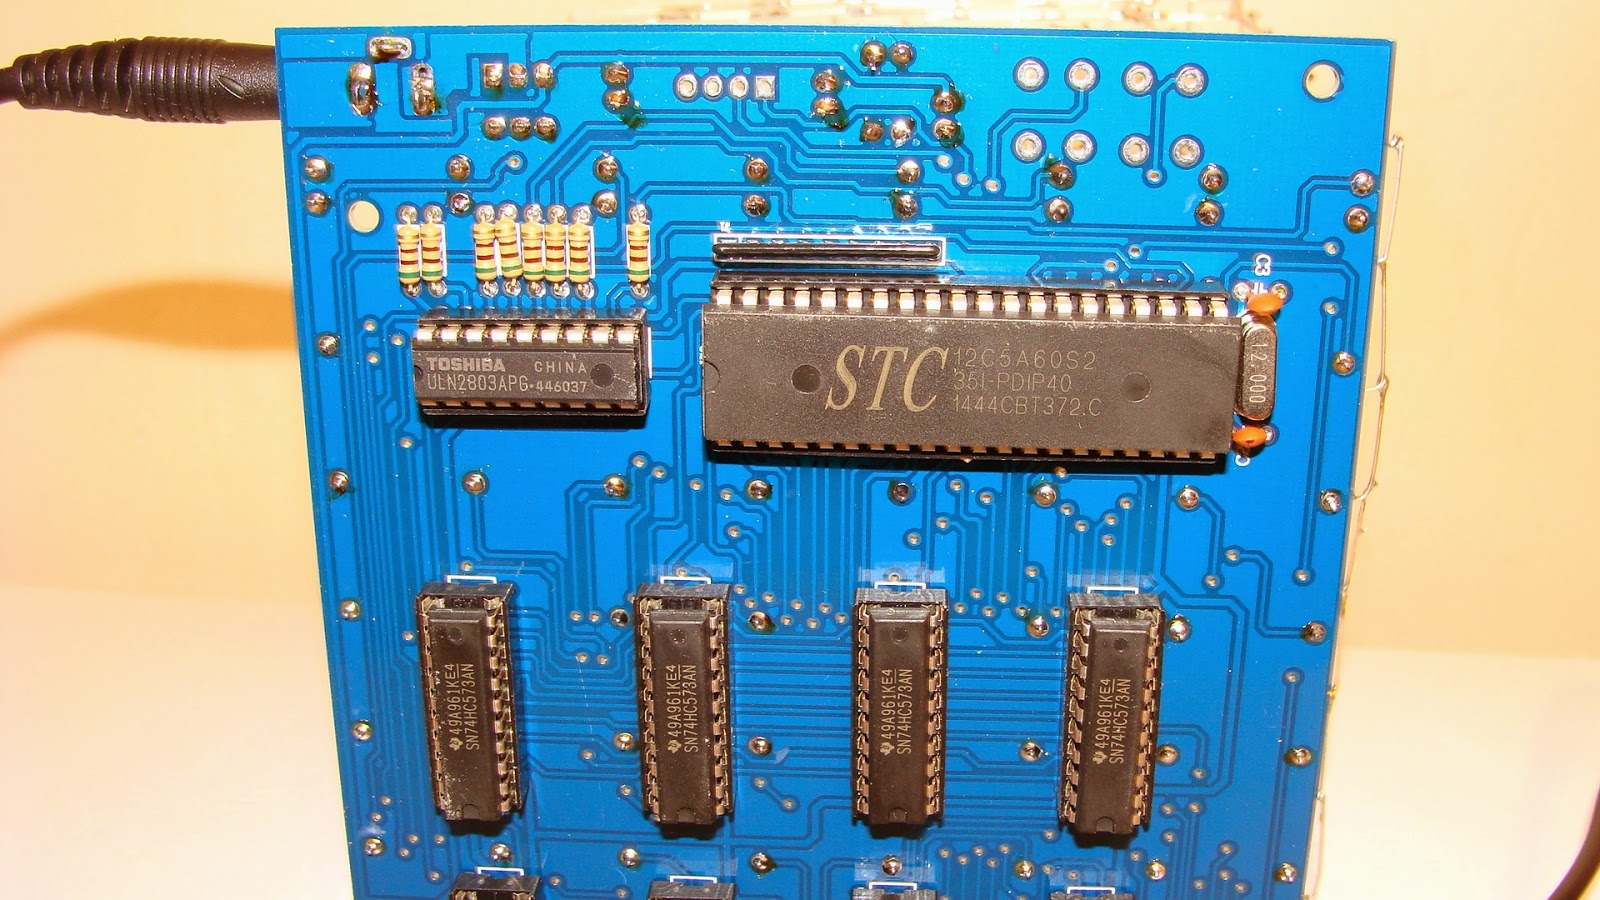 medium resolution of here is the bottom view so you can see the ic s